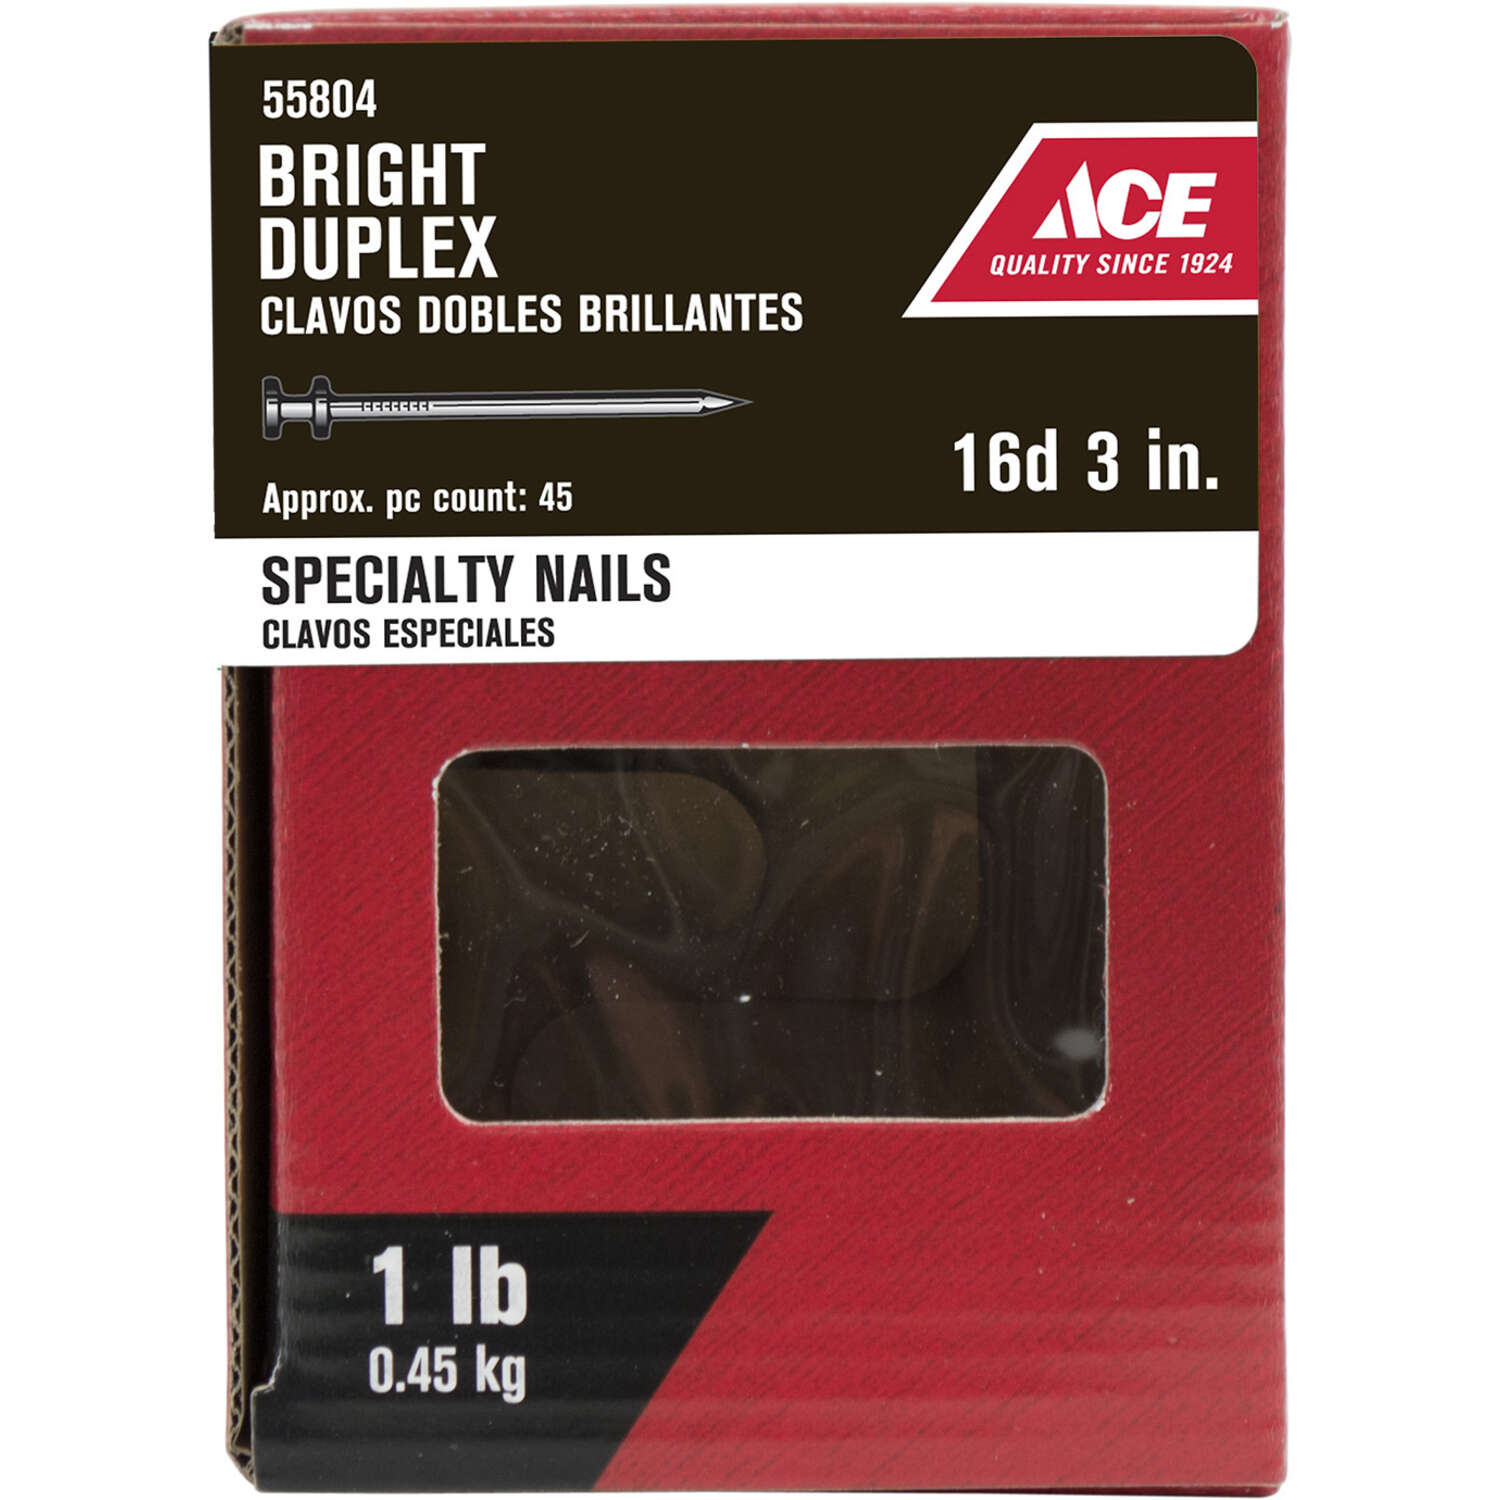 Ace  16D  3 in. Duplex  Bright  Steel  Nail  Double  1 lb.